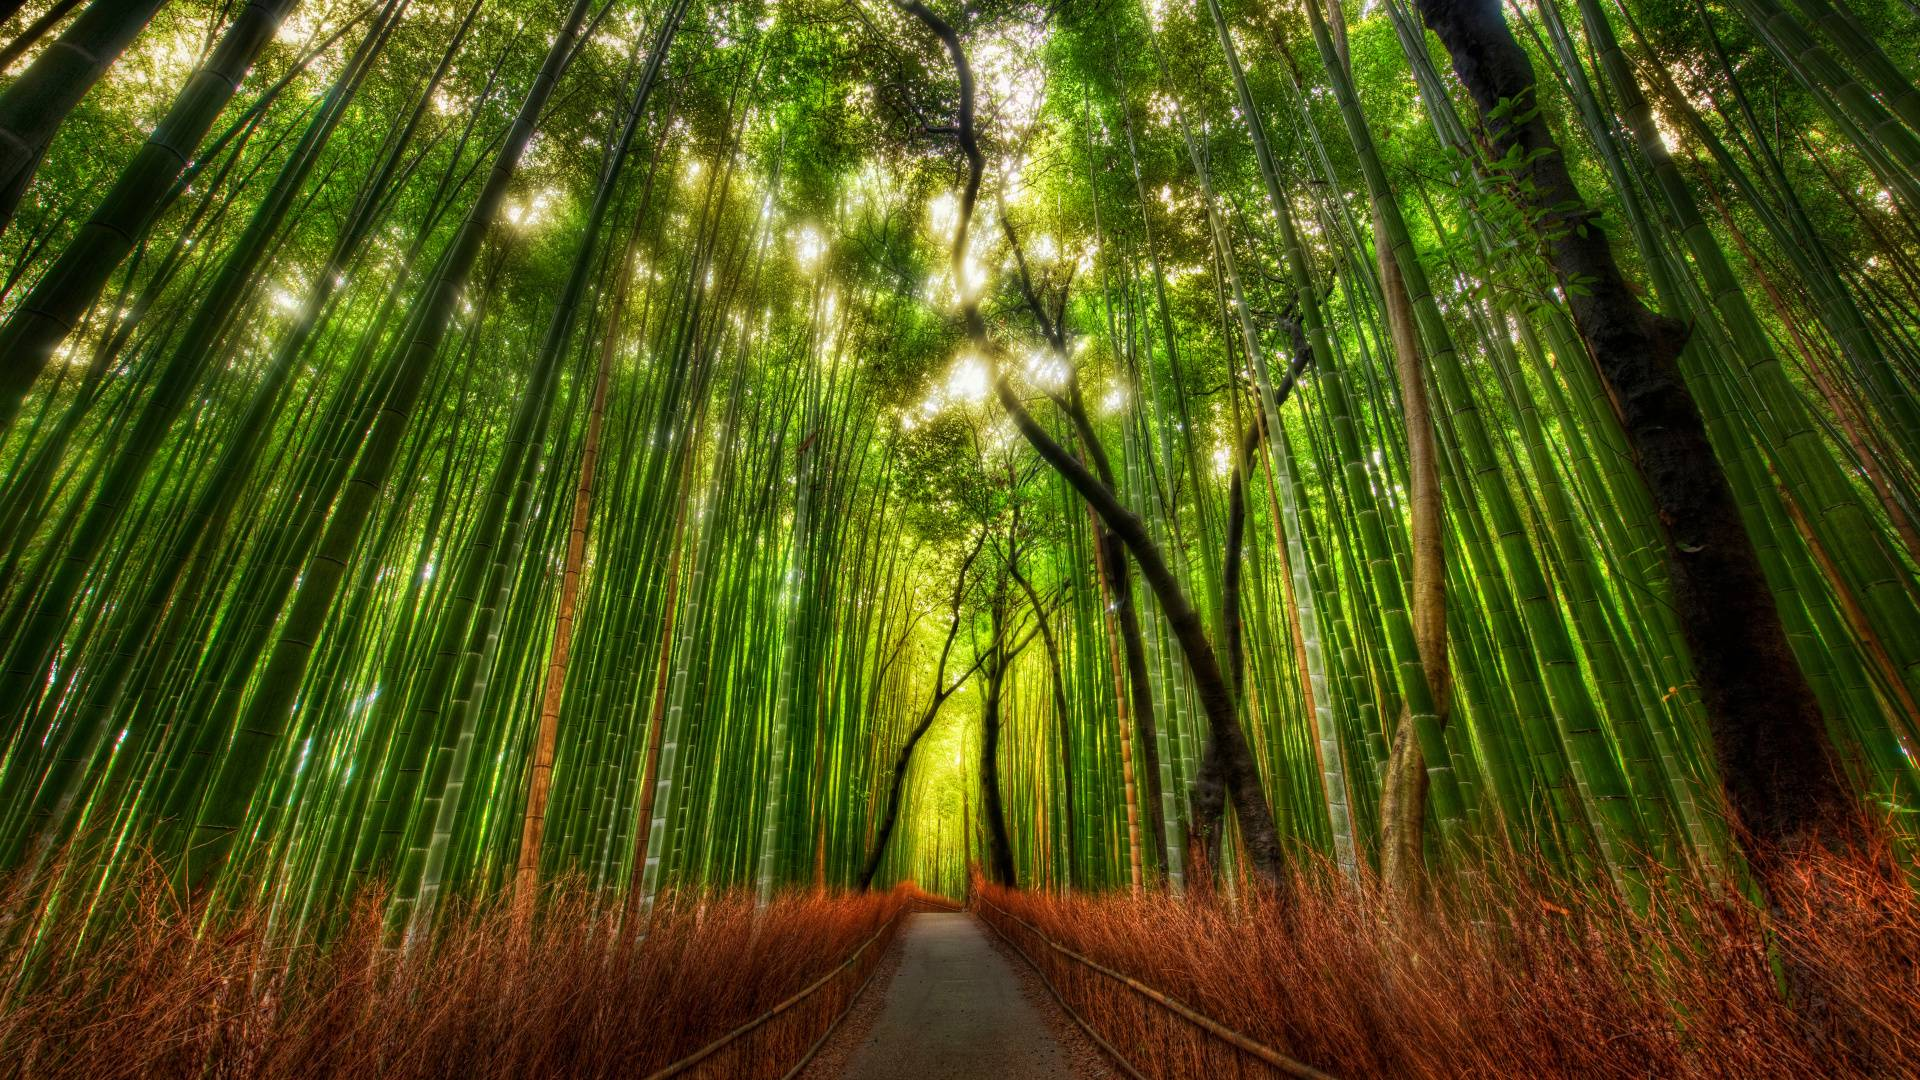 Bamboo Forest HD wallpapers « Wallpapers HD